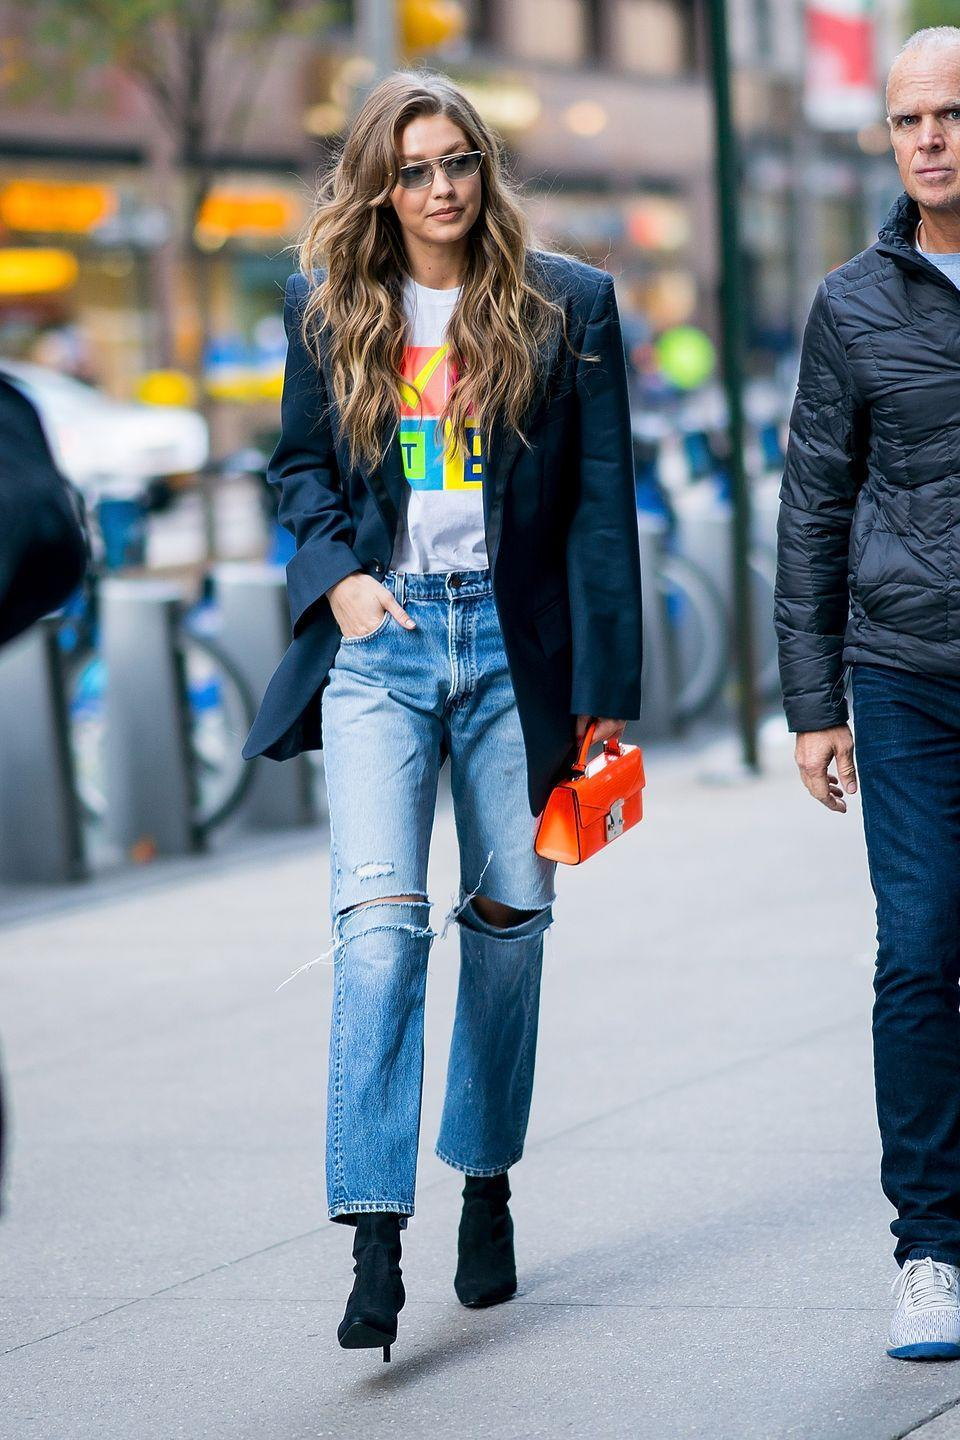 """<p>Gigi pulls together graphic tee and jeans with a structured blazer and a bright mini bag. This is an outfit built for dinner dates, shopping trips, and beyond. </p><p><strong>What you'll need: </strong><em>Oversized</em><em> Check Blazer, $65, ASOS</em></p><p><a class=""""link rapid-noclick-resp"""" href=""""https://go.redirectingat.com?id=74968X1596630&url=https%3A%2F%2Fwww.asos.com%2Fus%2Fcollusion%2Fcollusion-oversized-blazer-in-check%2Fprd%2F14365510&sref=https%3A%2F%2Fwww.seventeen.com%2Ffashion%2Fstyle-advice%2Fg25727522%2Fcasual-outfits%2F"""" rel=""""nofollow noopener"""" target=""""_blank"""" data-ylk=""""slk:SHOP HERE"""">SHOP HERE</a></p>"""